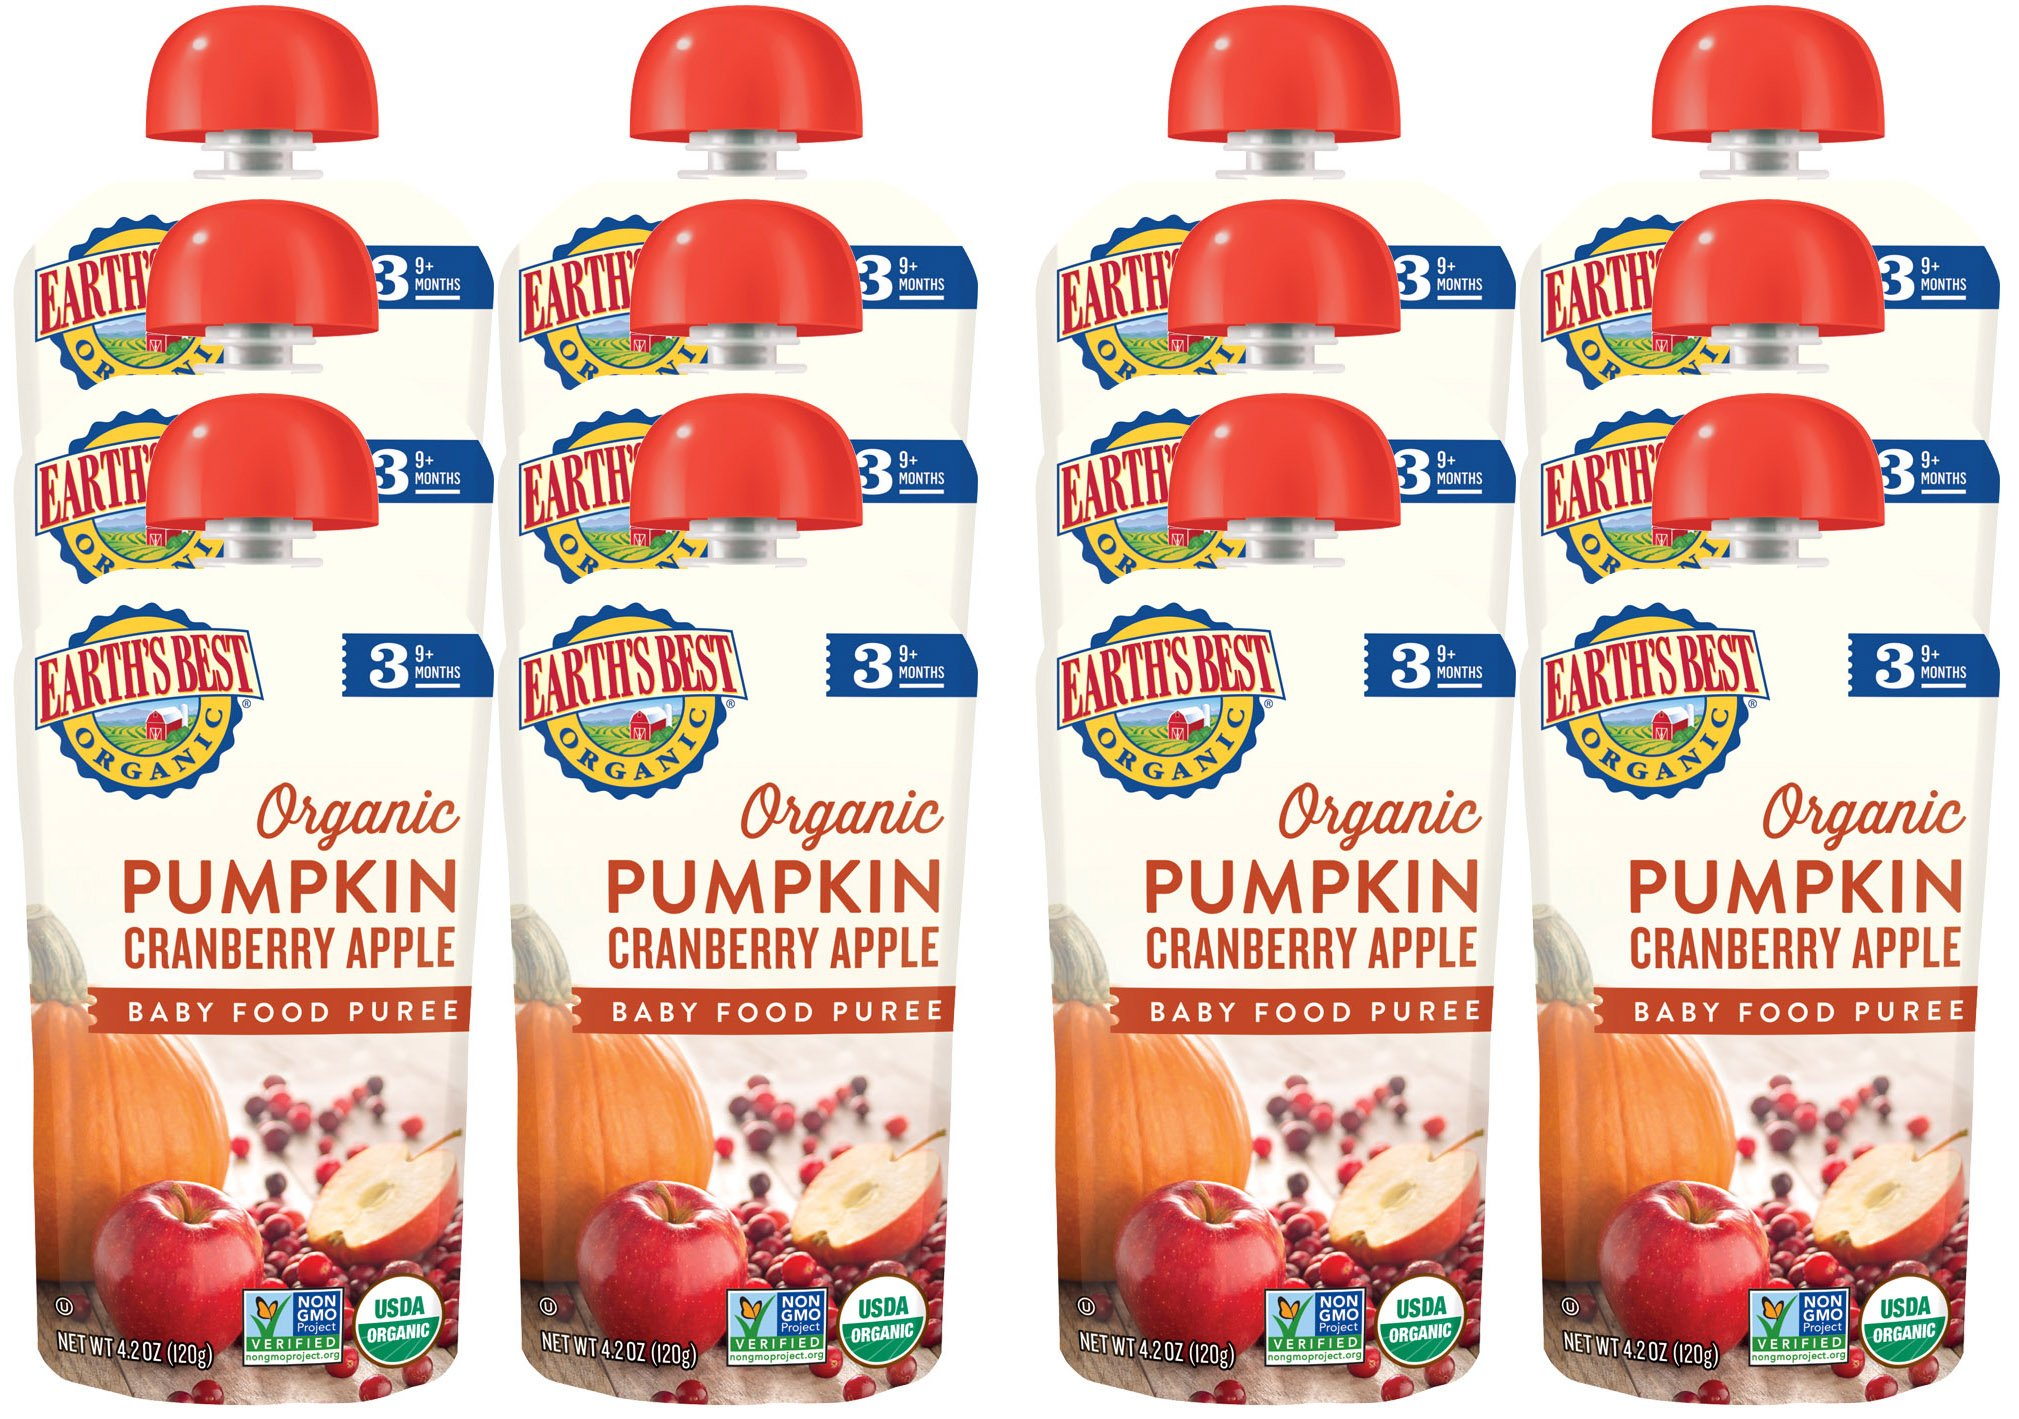 Earth's Best Organic Stage 3, Pumpkin, Cranberry & Apple, 4.2 Ounce Pouch (Pack of 12) (Packaging May Vary) by Earth's Best (Image #6)